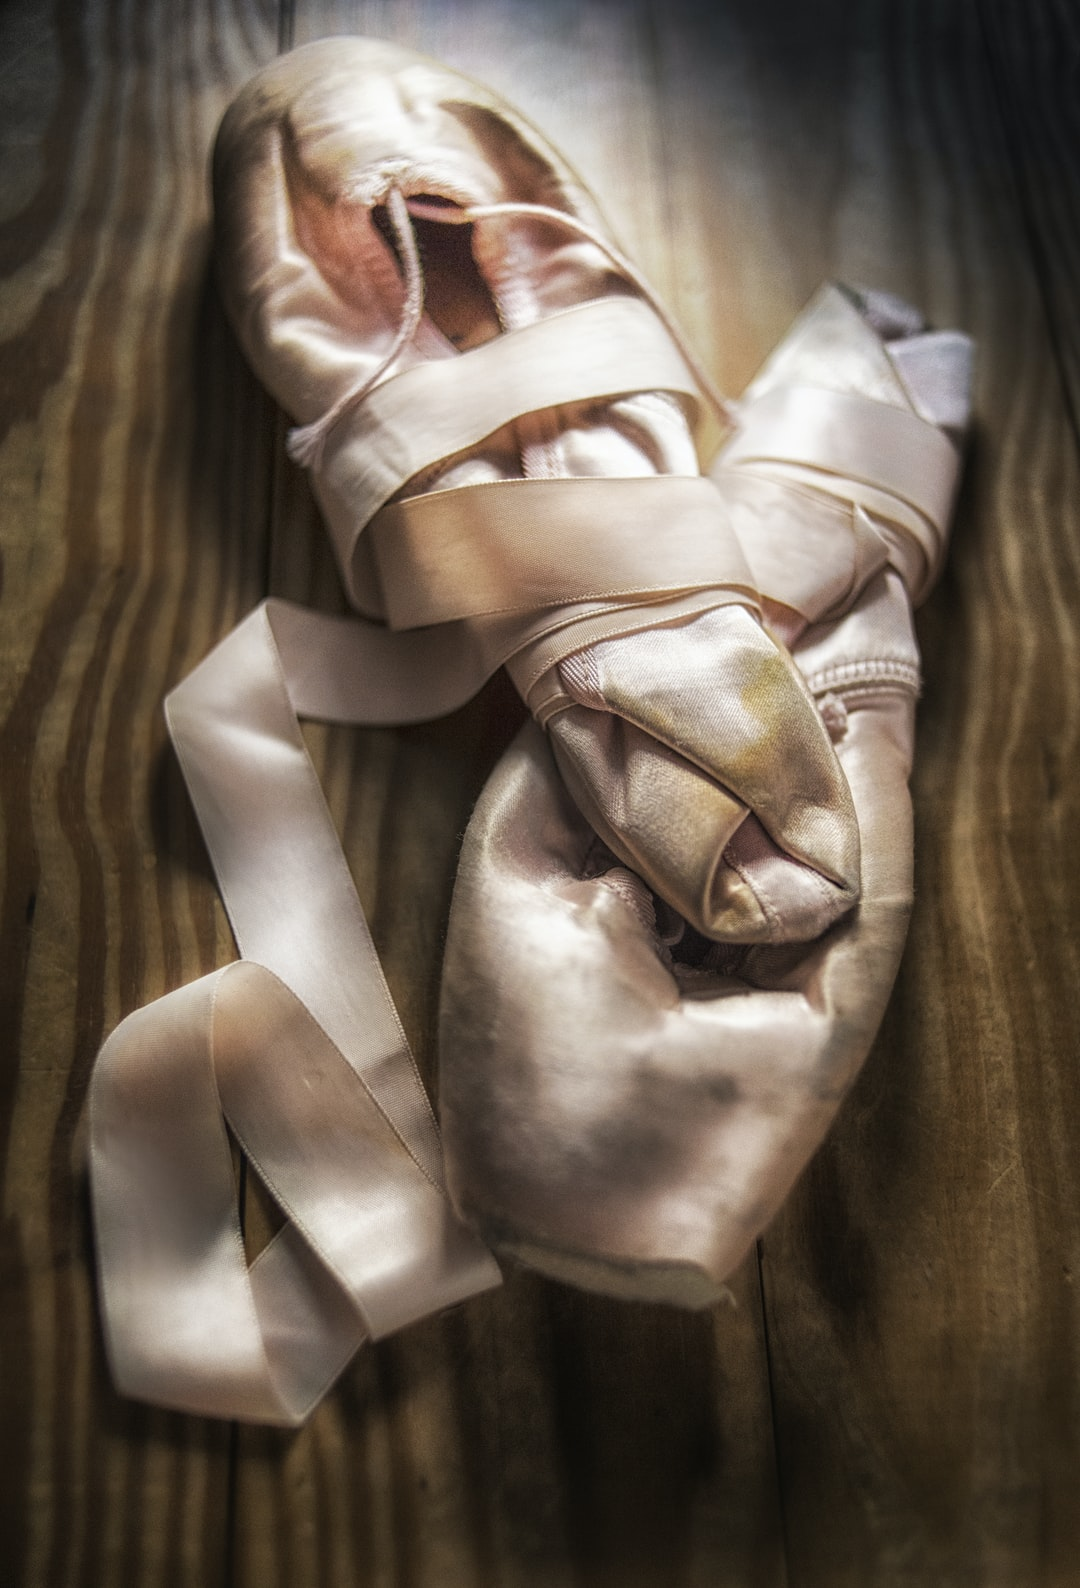 My wife was a professional dancer. When age told her no more, I photographed the last pair of pointe shoes she had worn. They are a bittersweet reminder of a life in the pursuit of excellence. Simple window light seemed appropriate.